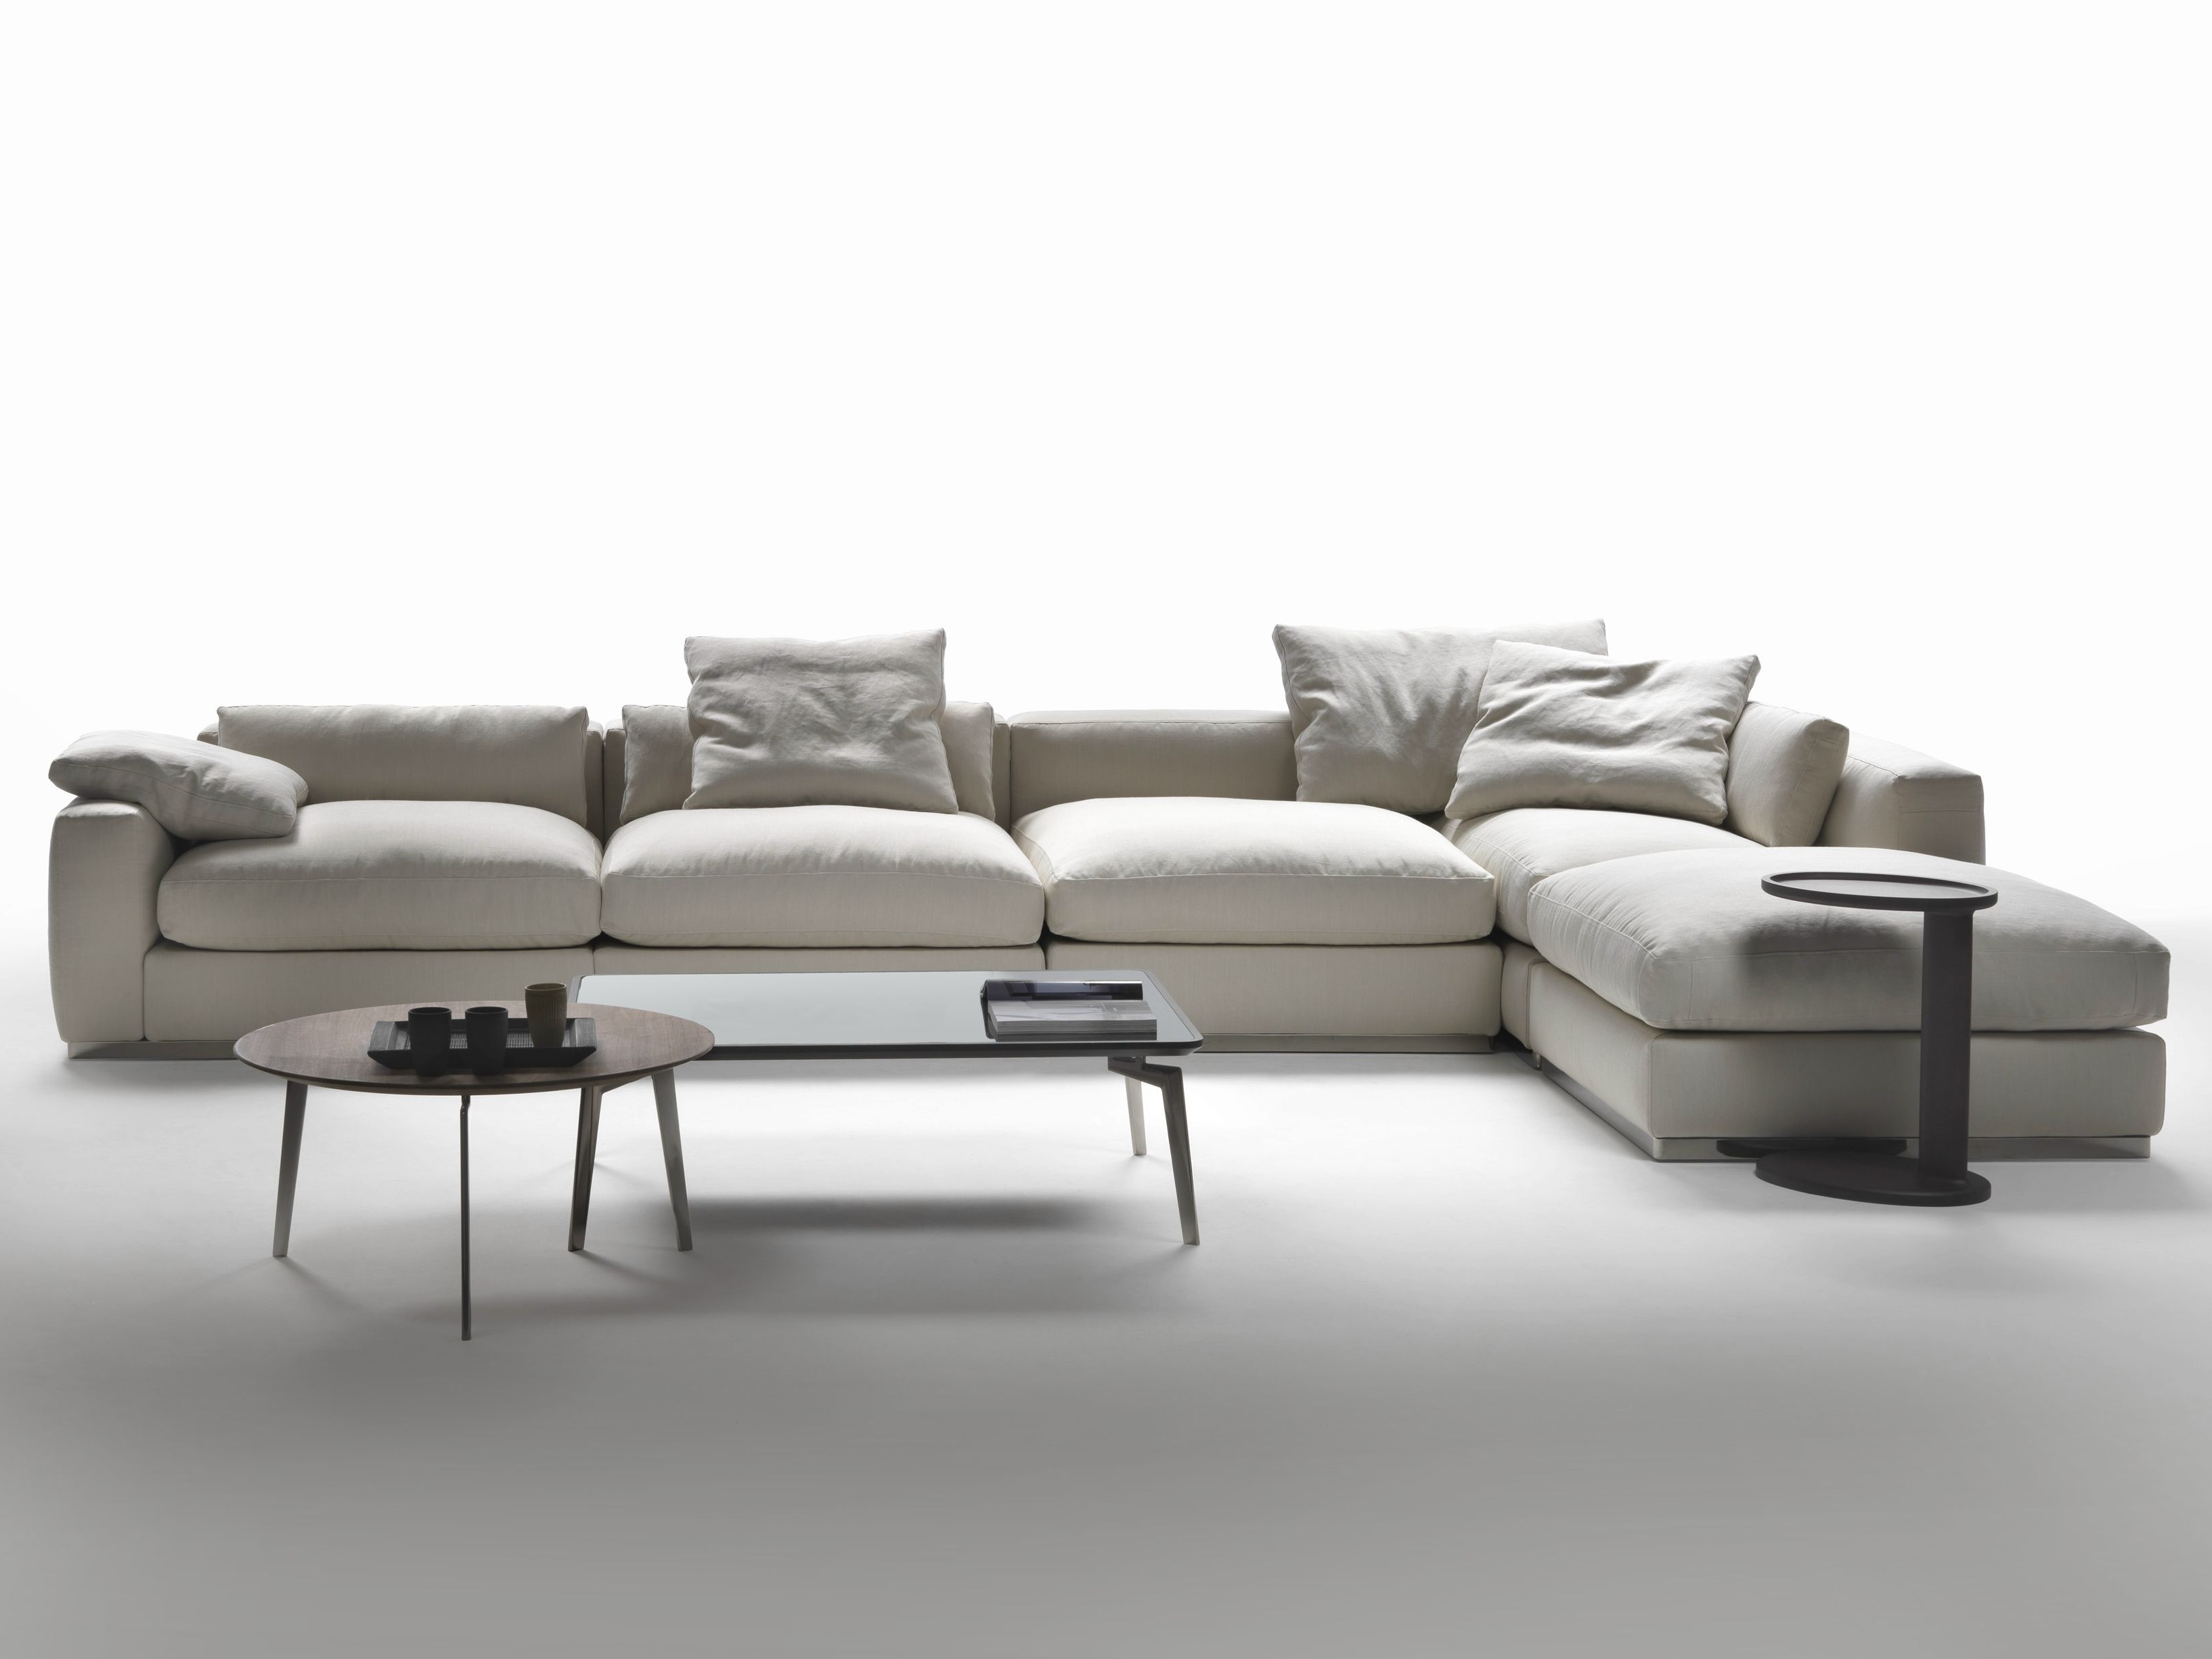 Corner Sectional Fabric Sofa Beauty (View 8 of 15)